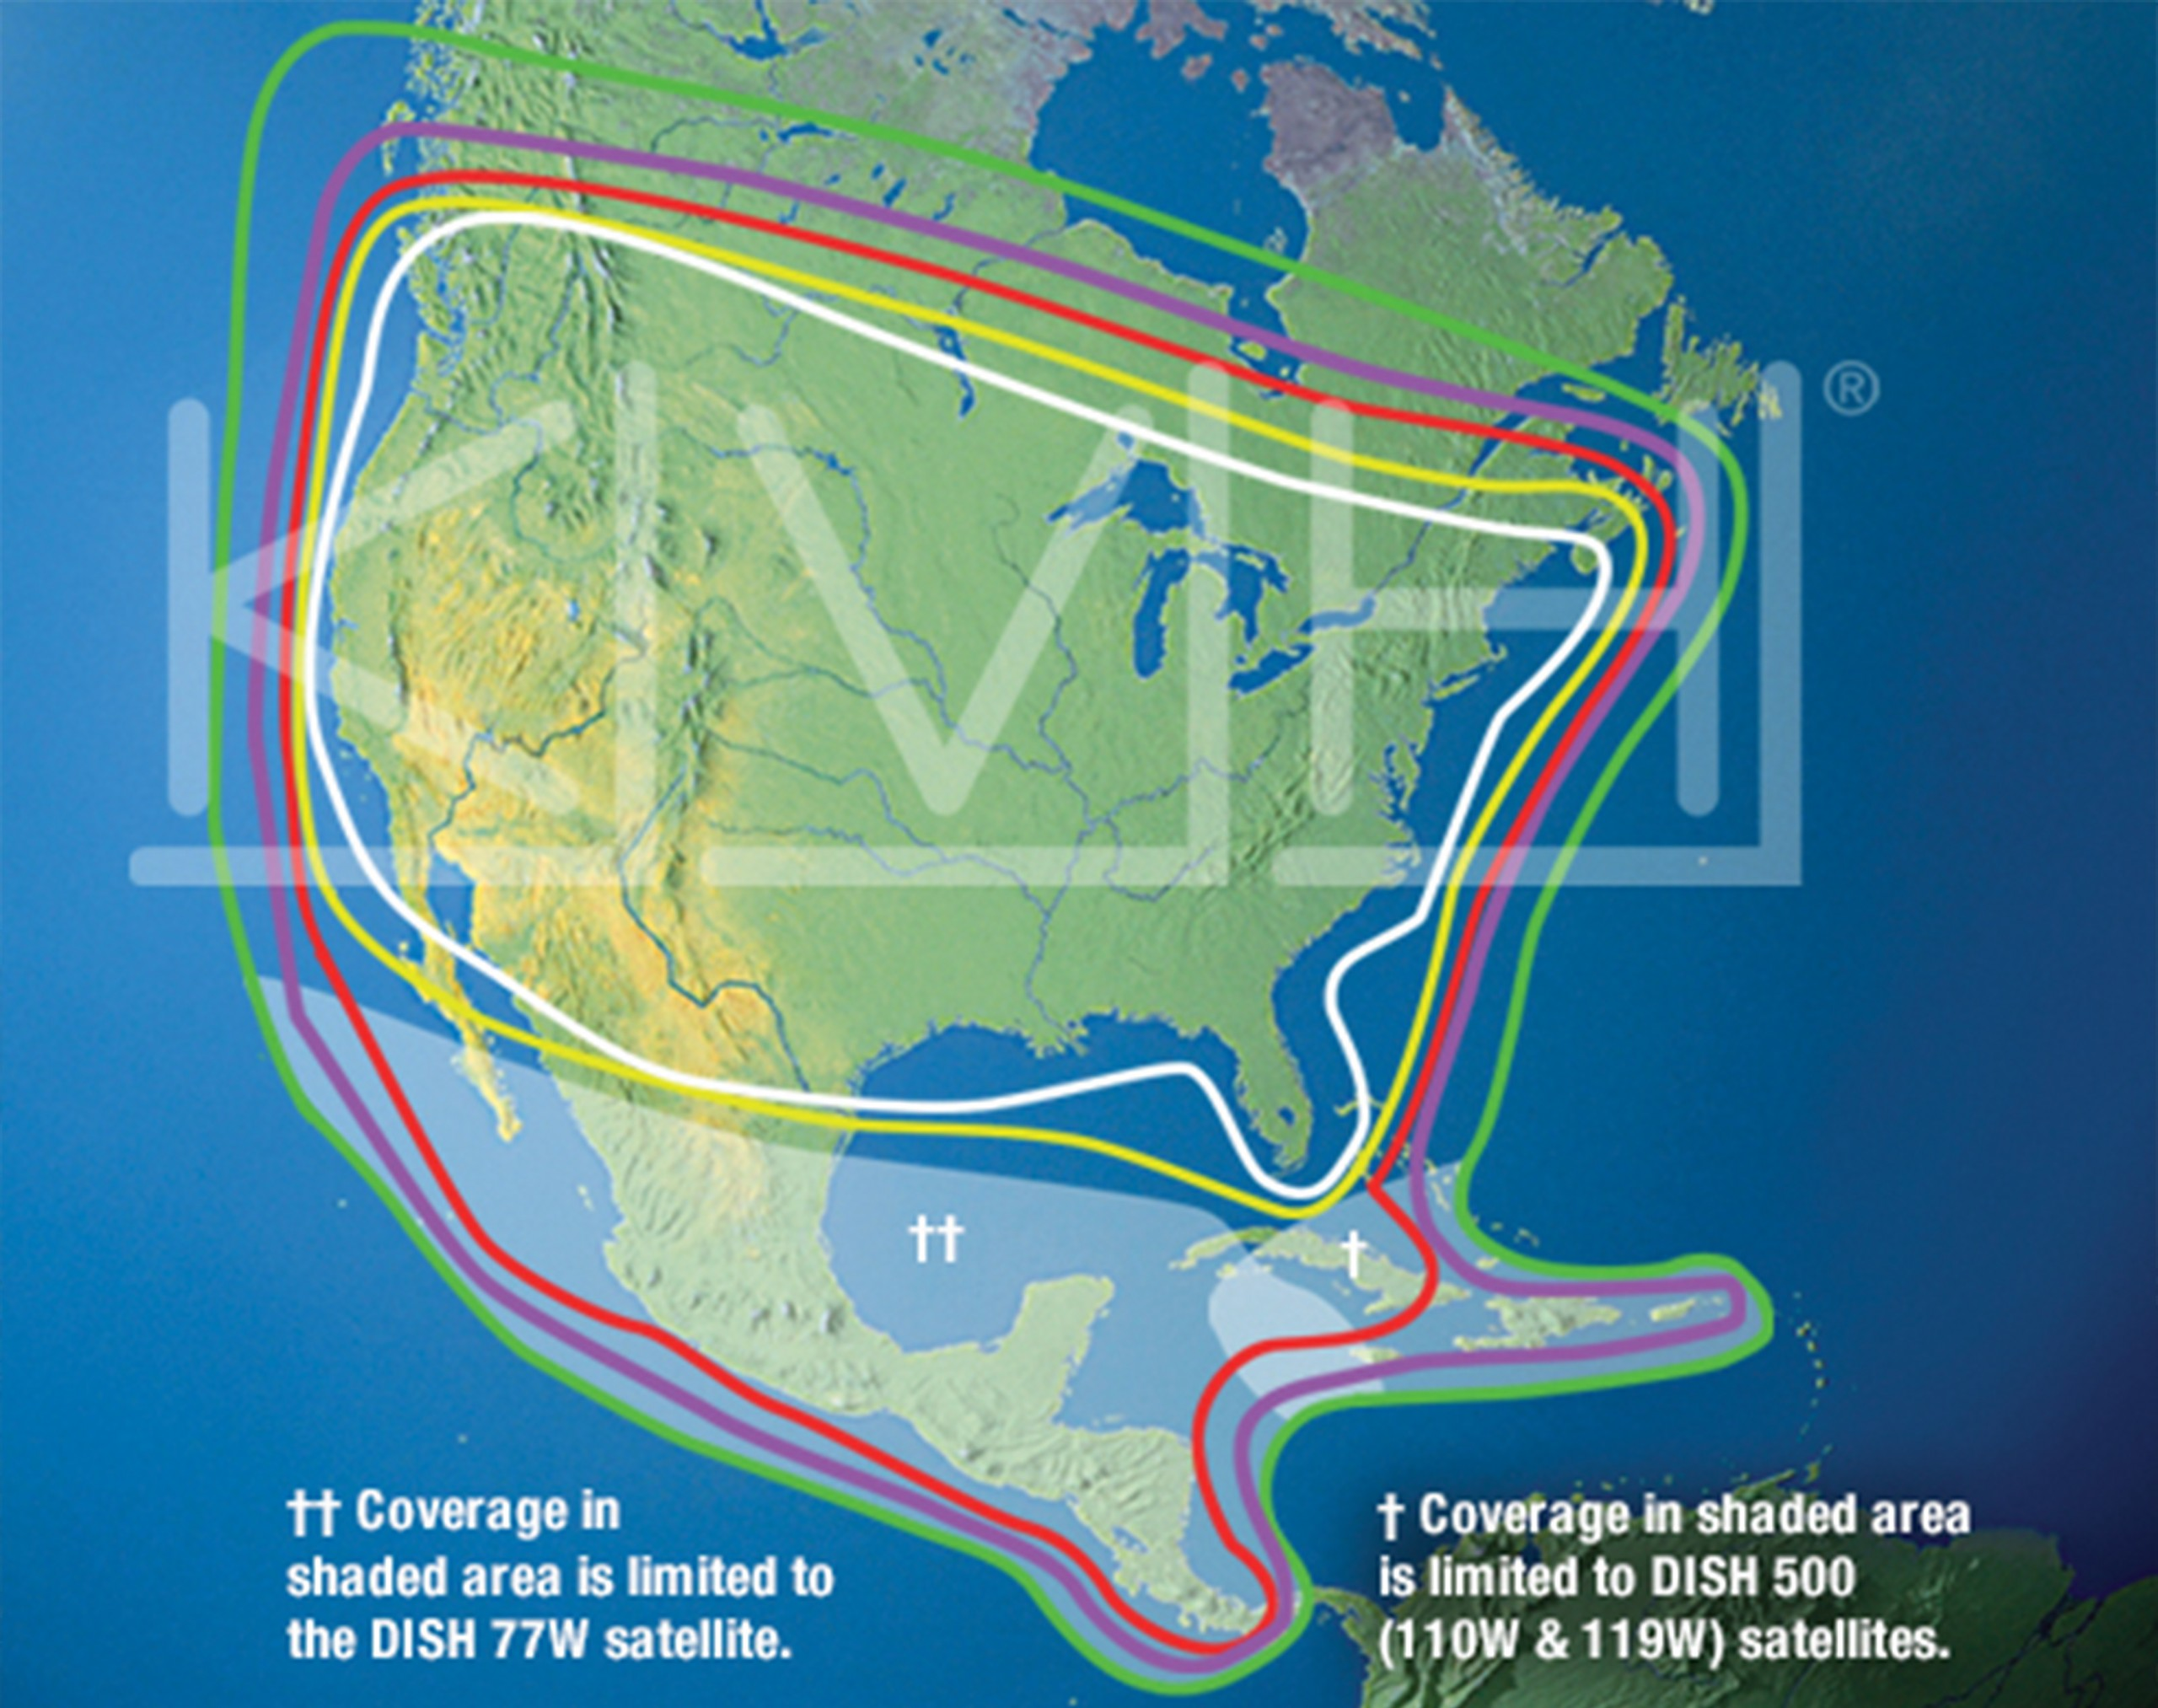 map showing KVH tv satelite coverage of North America